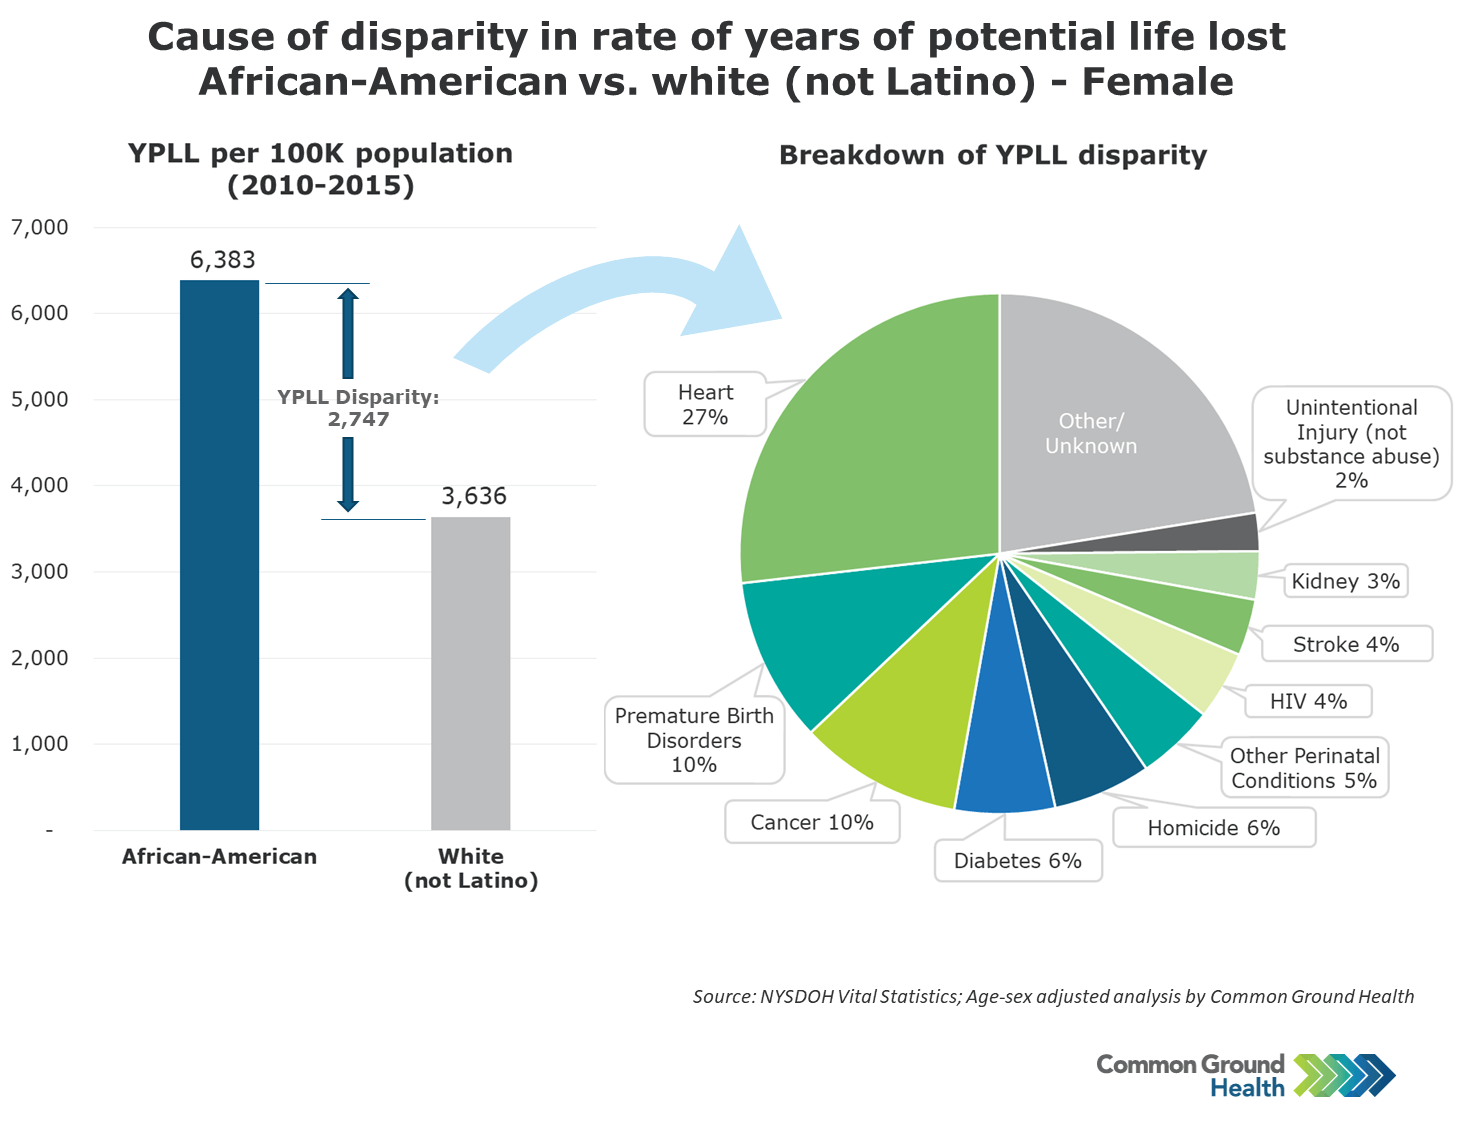 Cause of Disparity in Rate of Years of Potential Life Lost African-American vs White (not Latino), Female